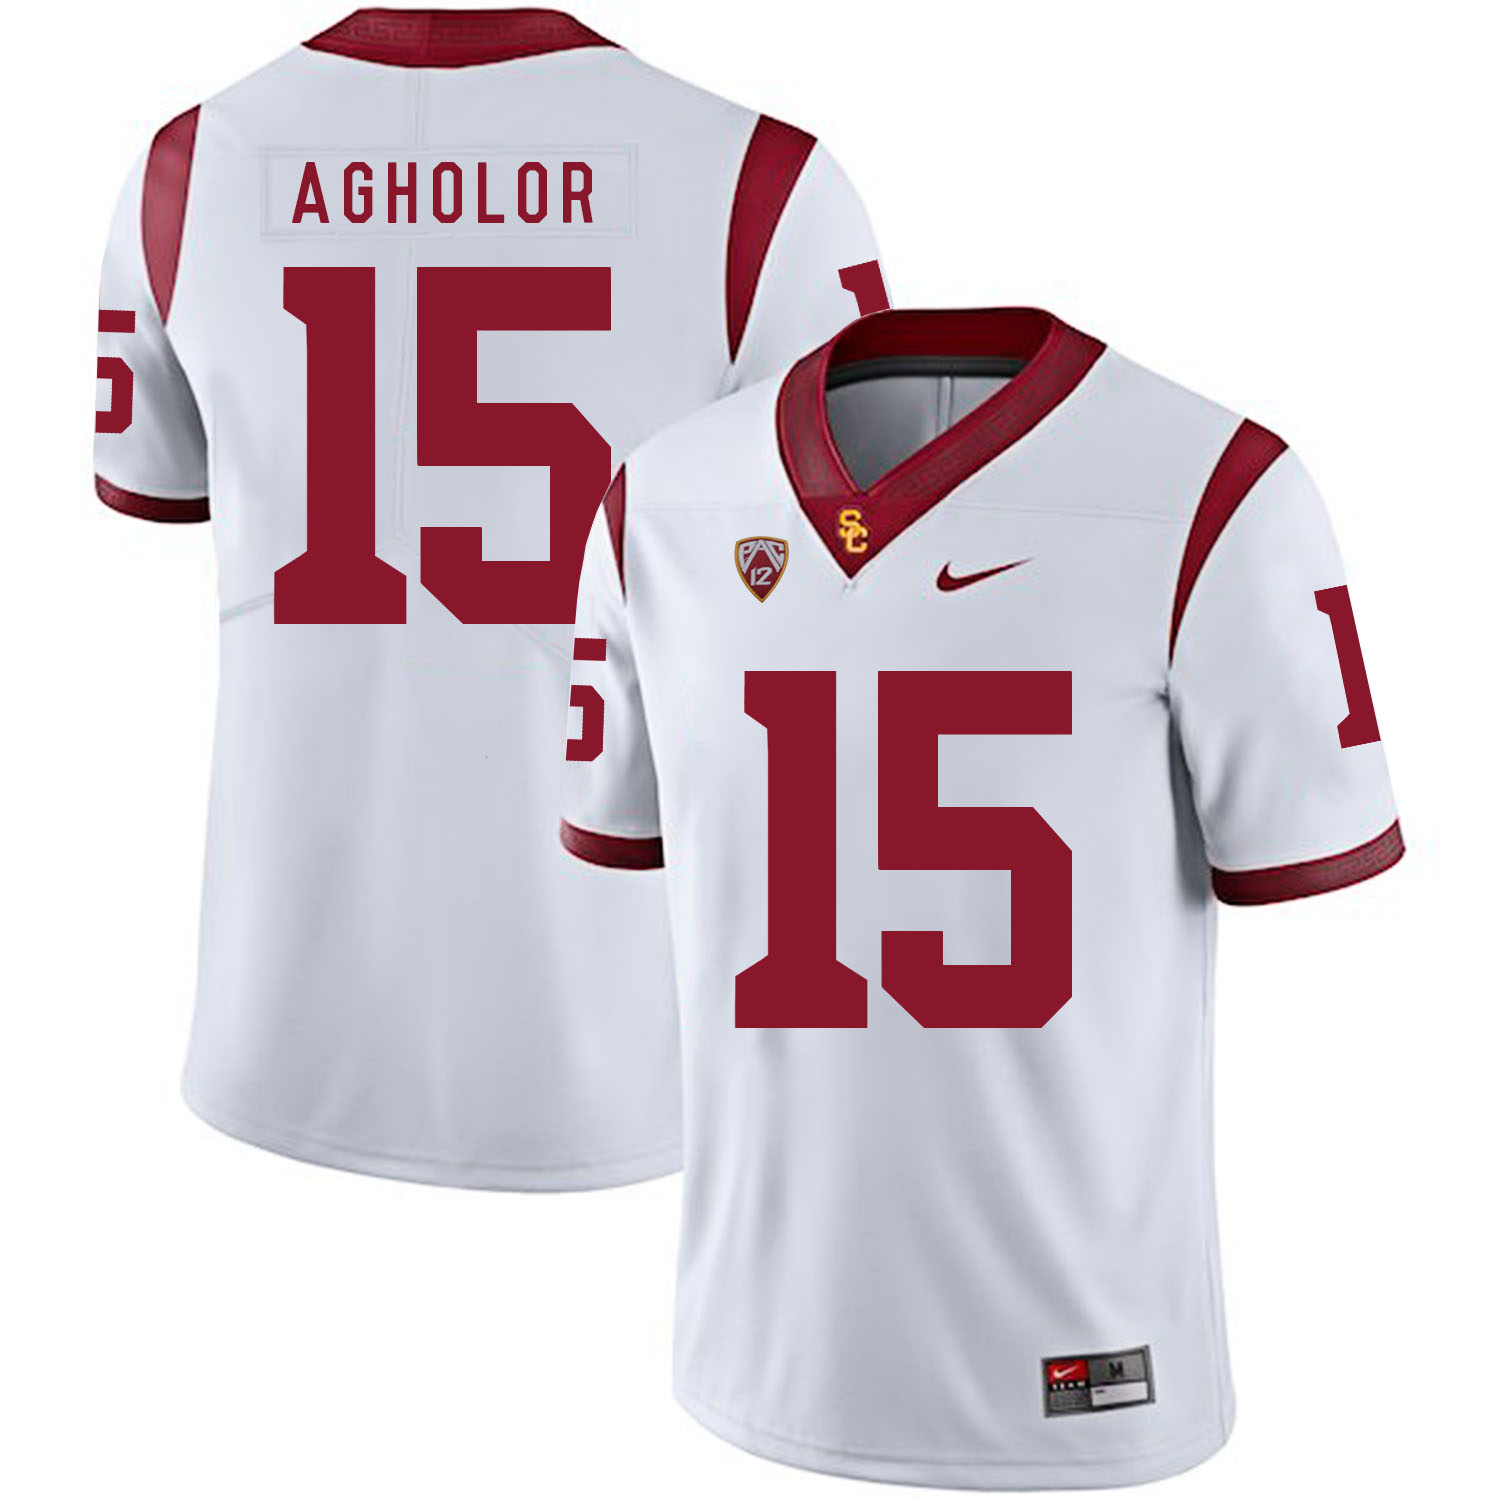 USC Trojans 15 Nelson Agholor White College Football Jersey